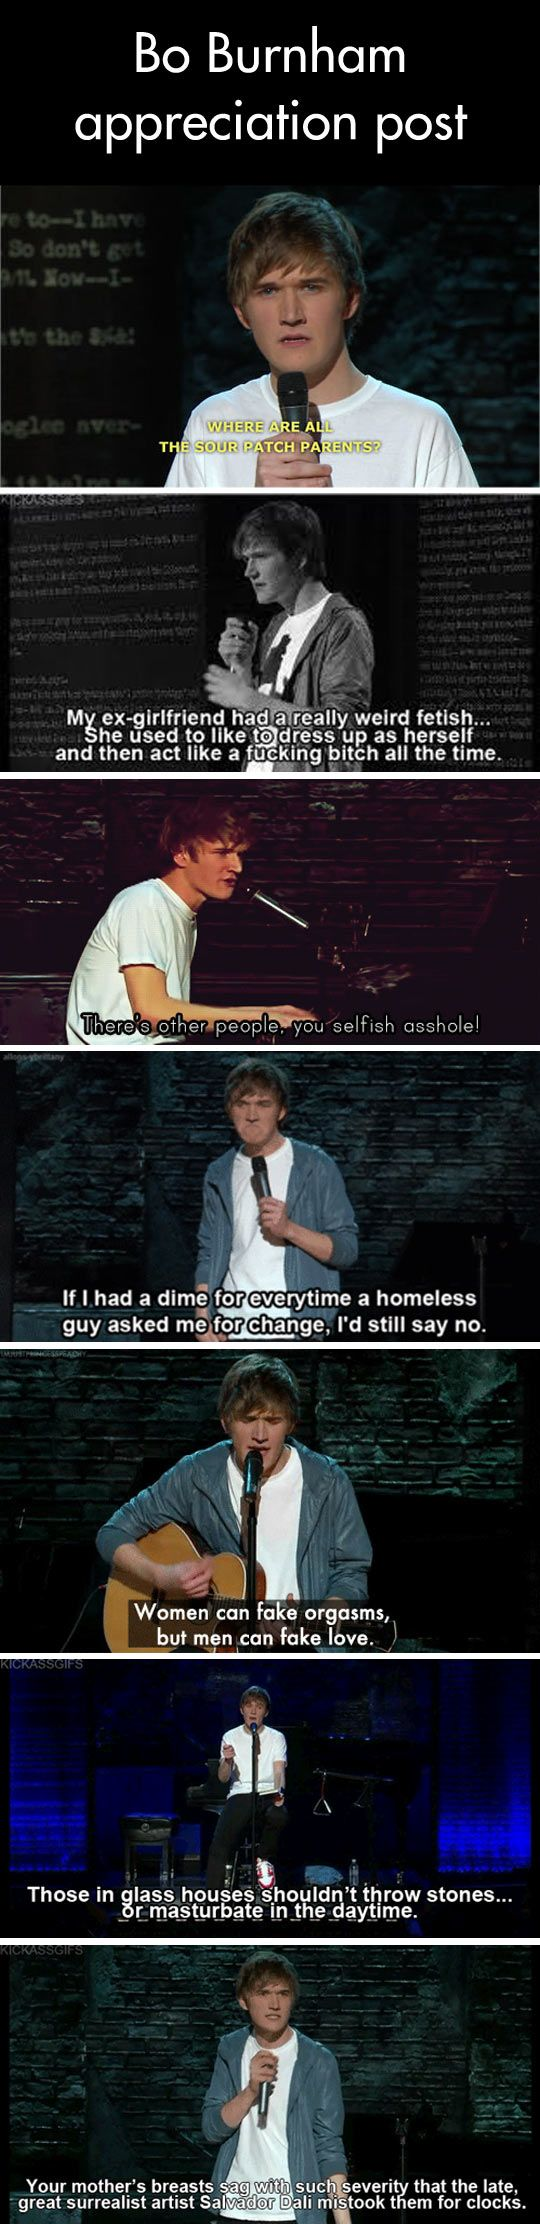 Bo Burnham is always appreciated around our place.